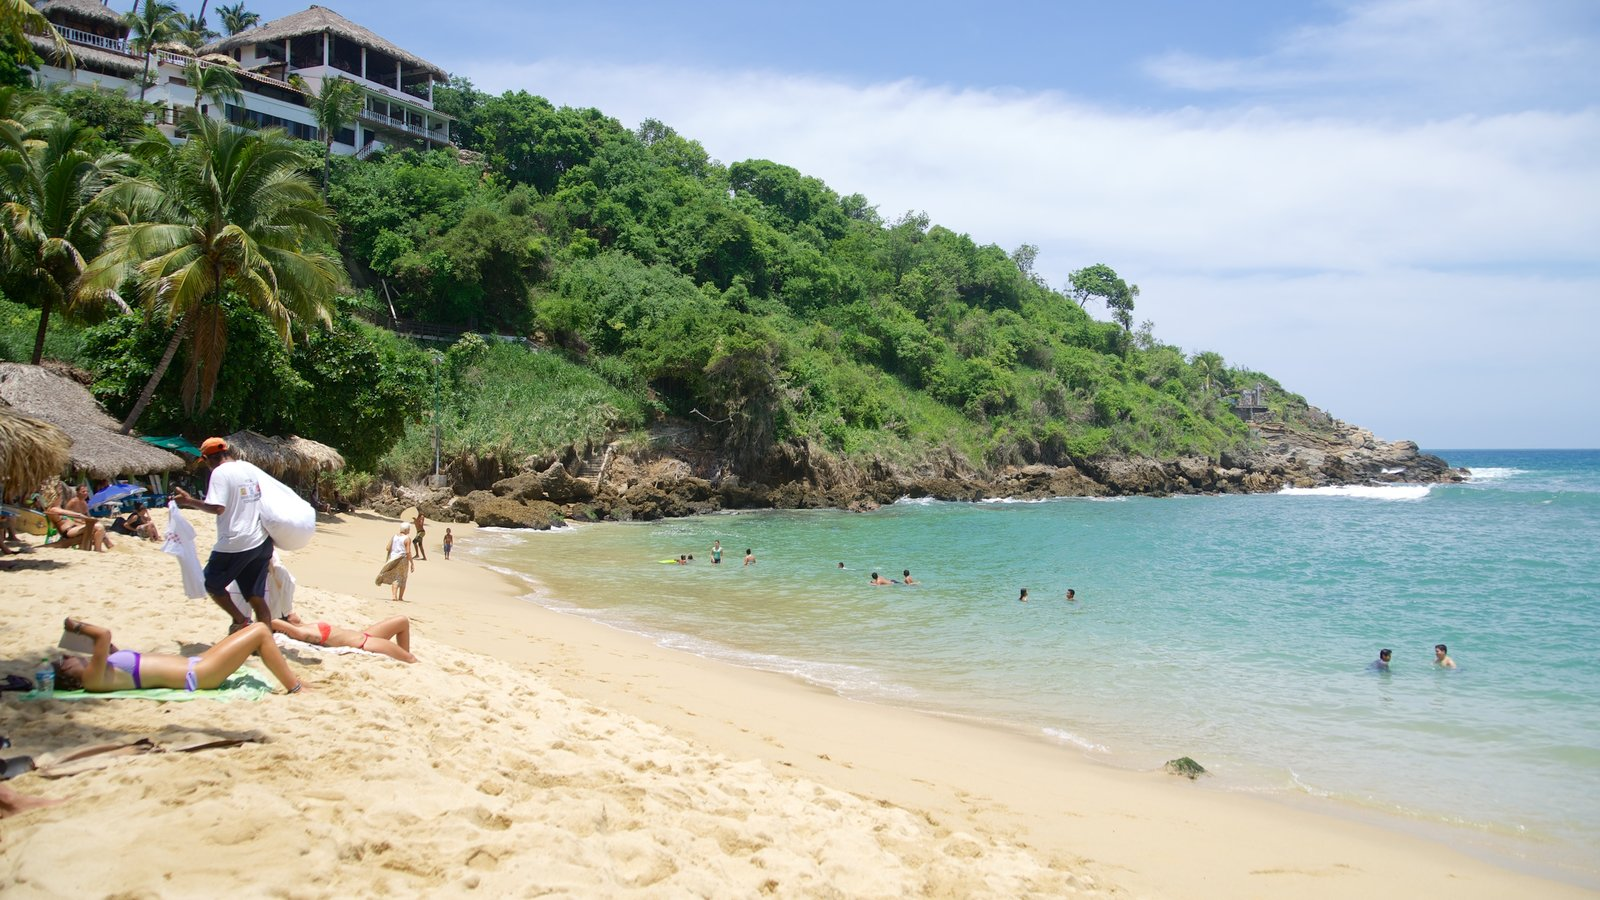 Carrizalillo Beach showing rocky coastline, a house and swimming